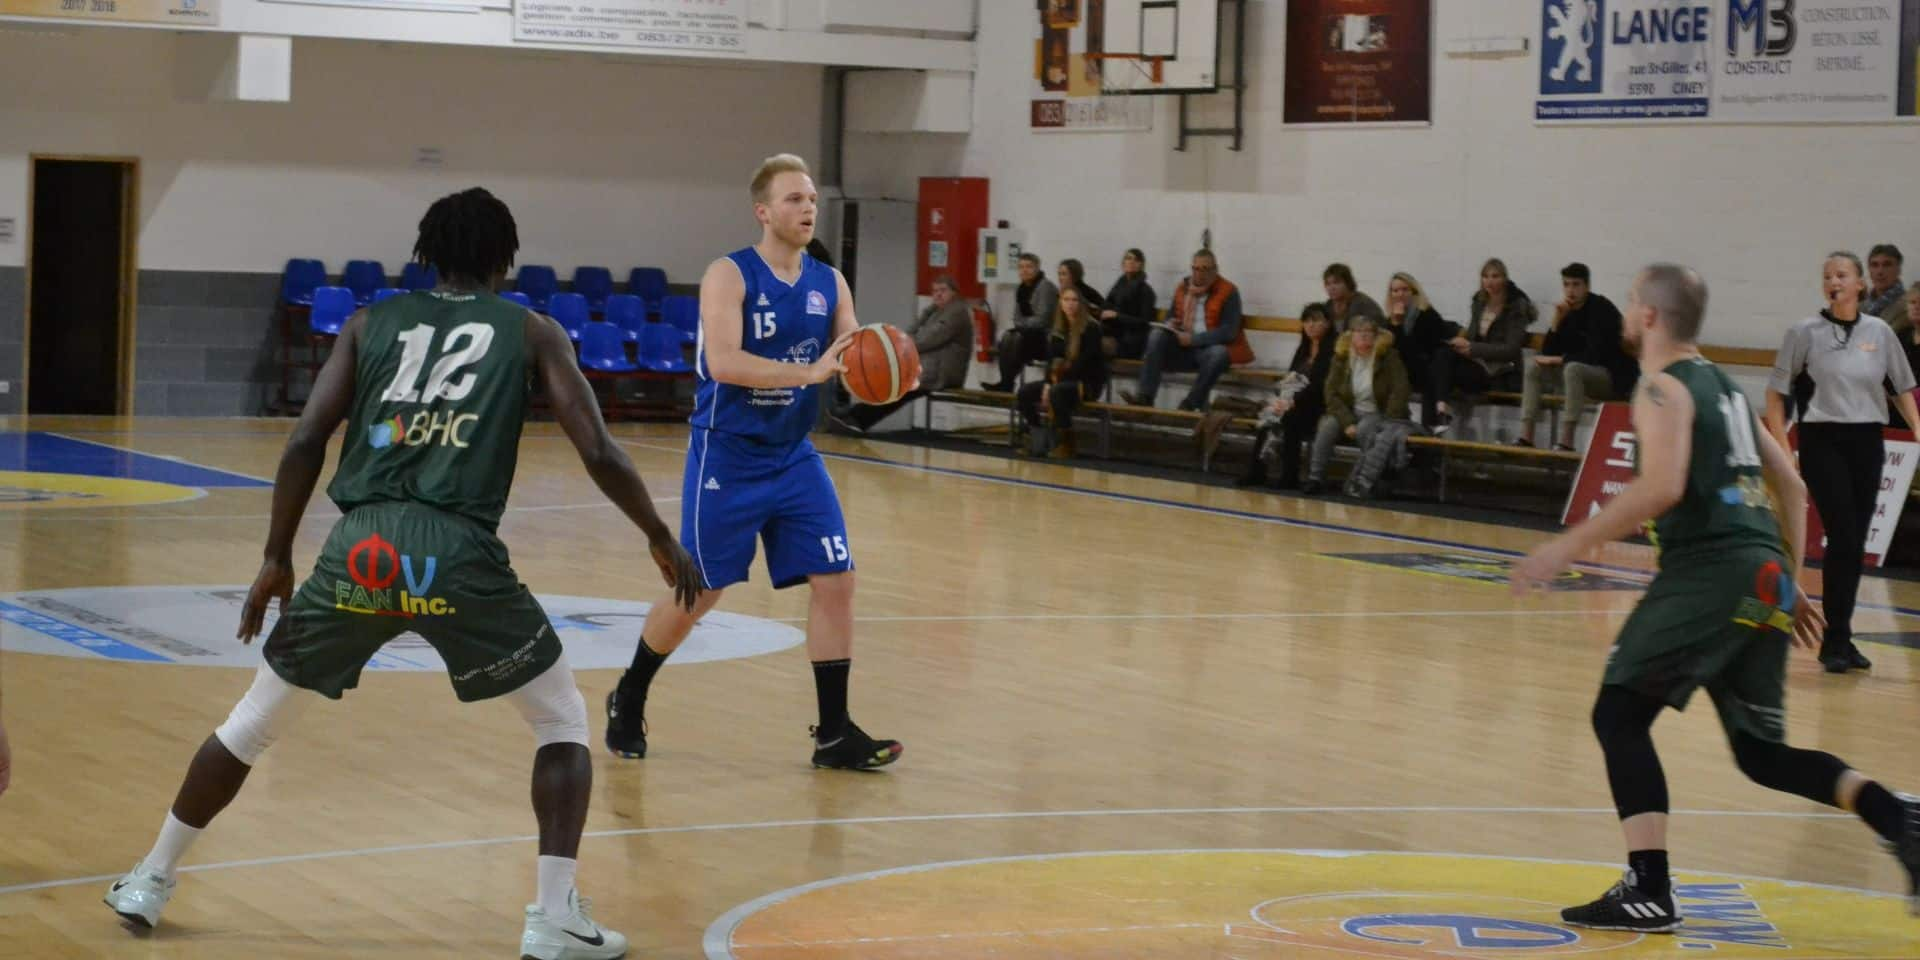 Basket-ball: Ciney (R1) s'impose grâce à un bon dernier quart temps face à Quaregnon